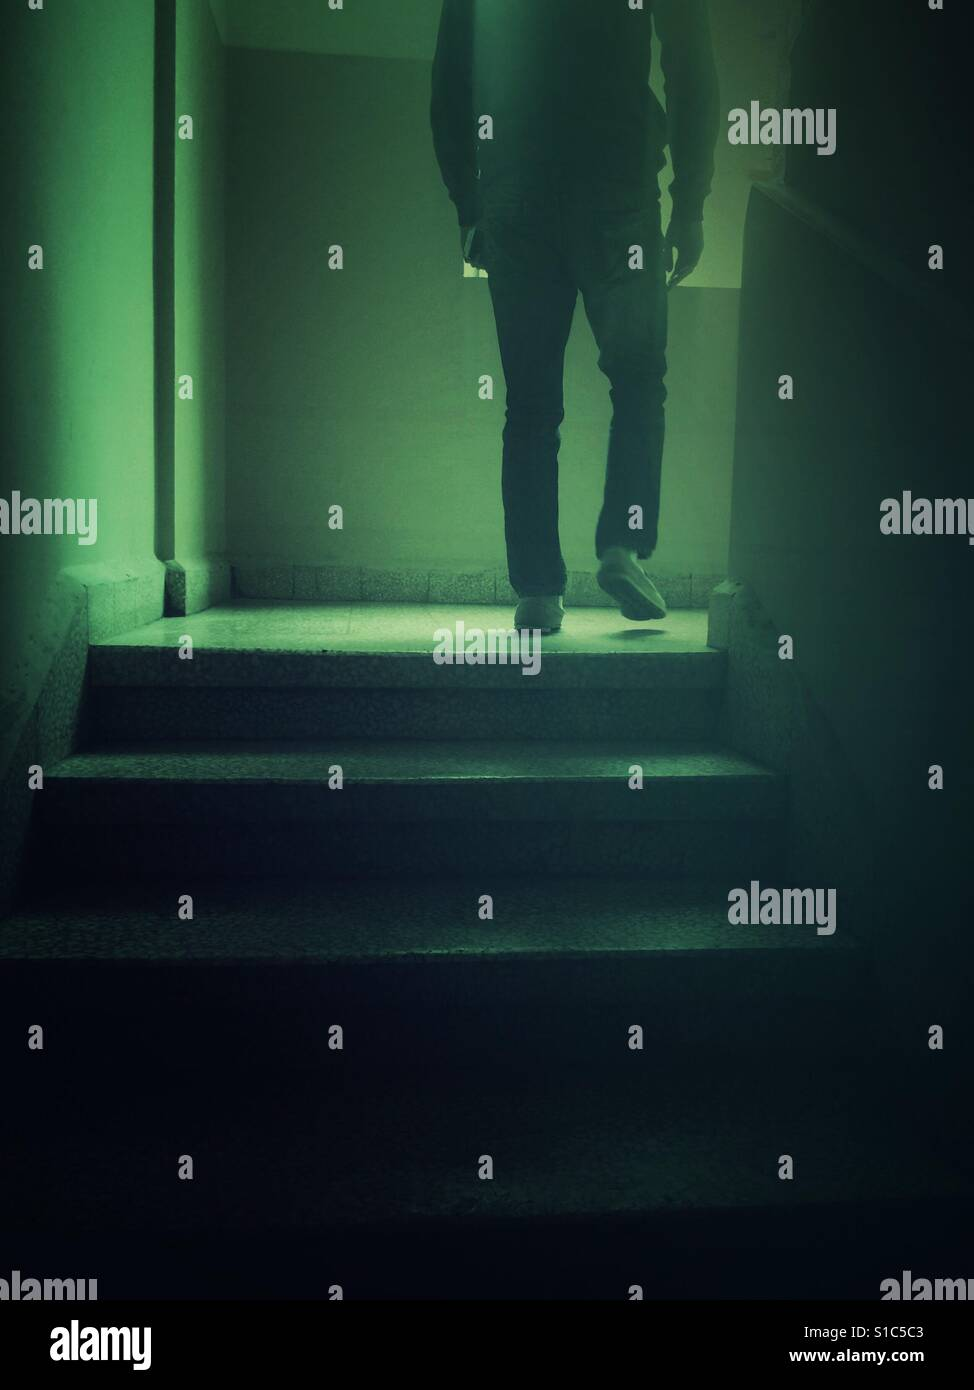 Rear view of a sinister male figure walking up the stairs - Stock Image